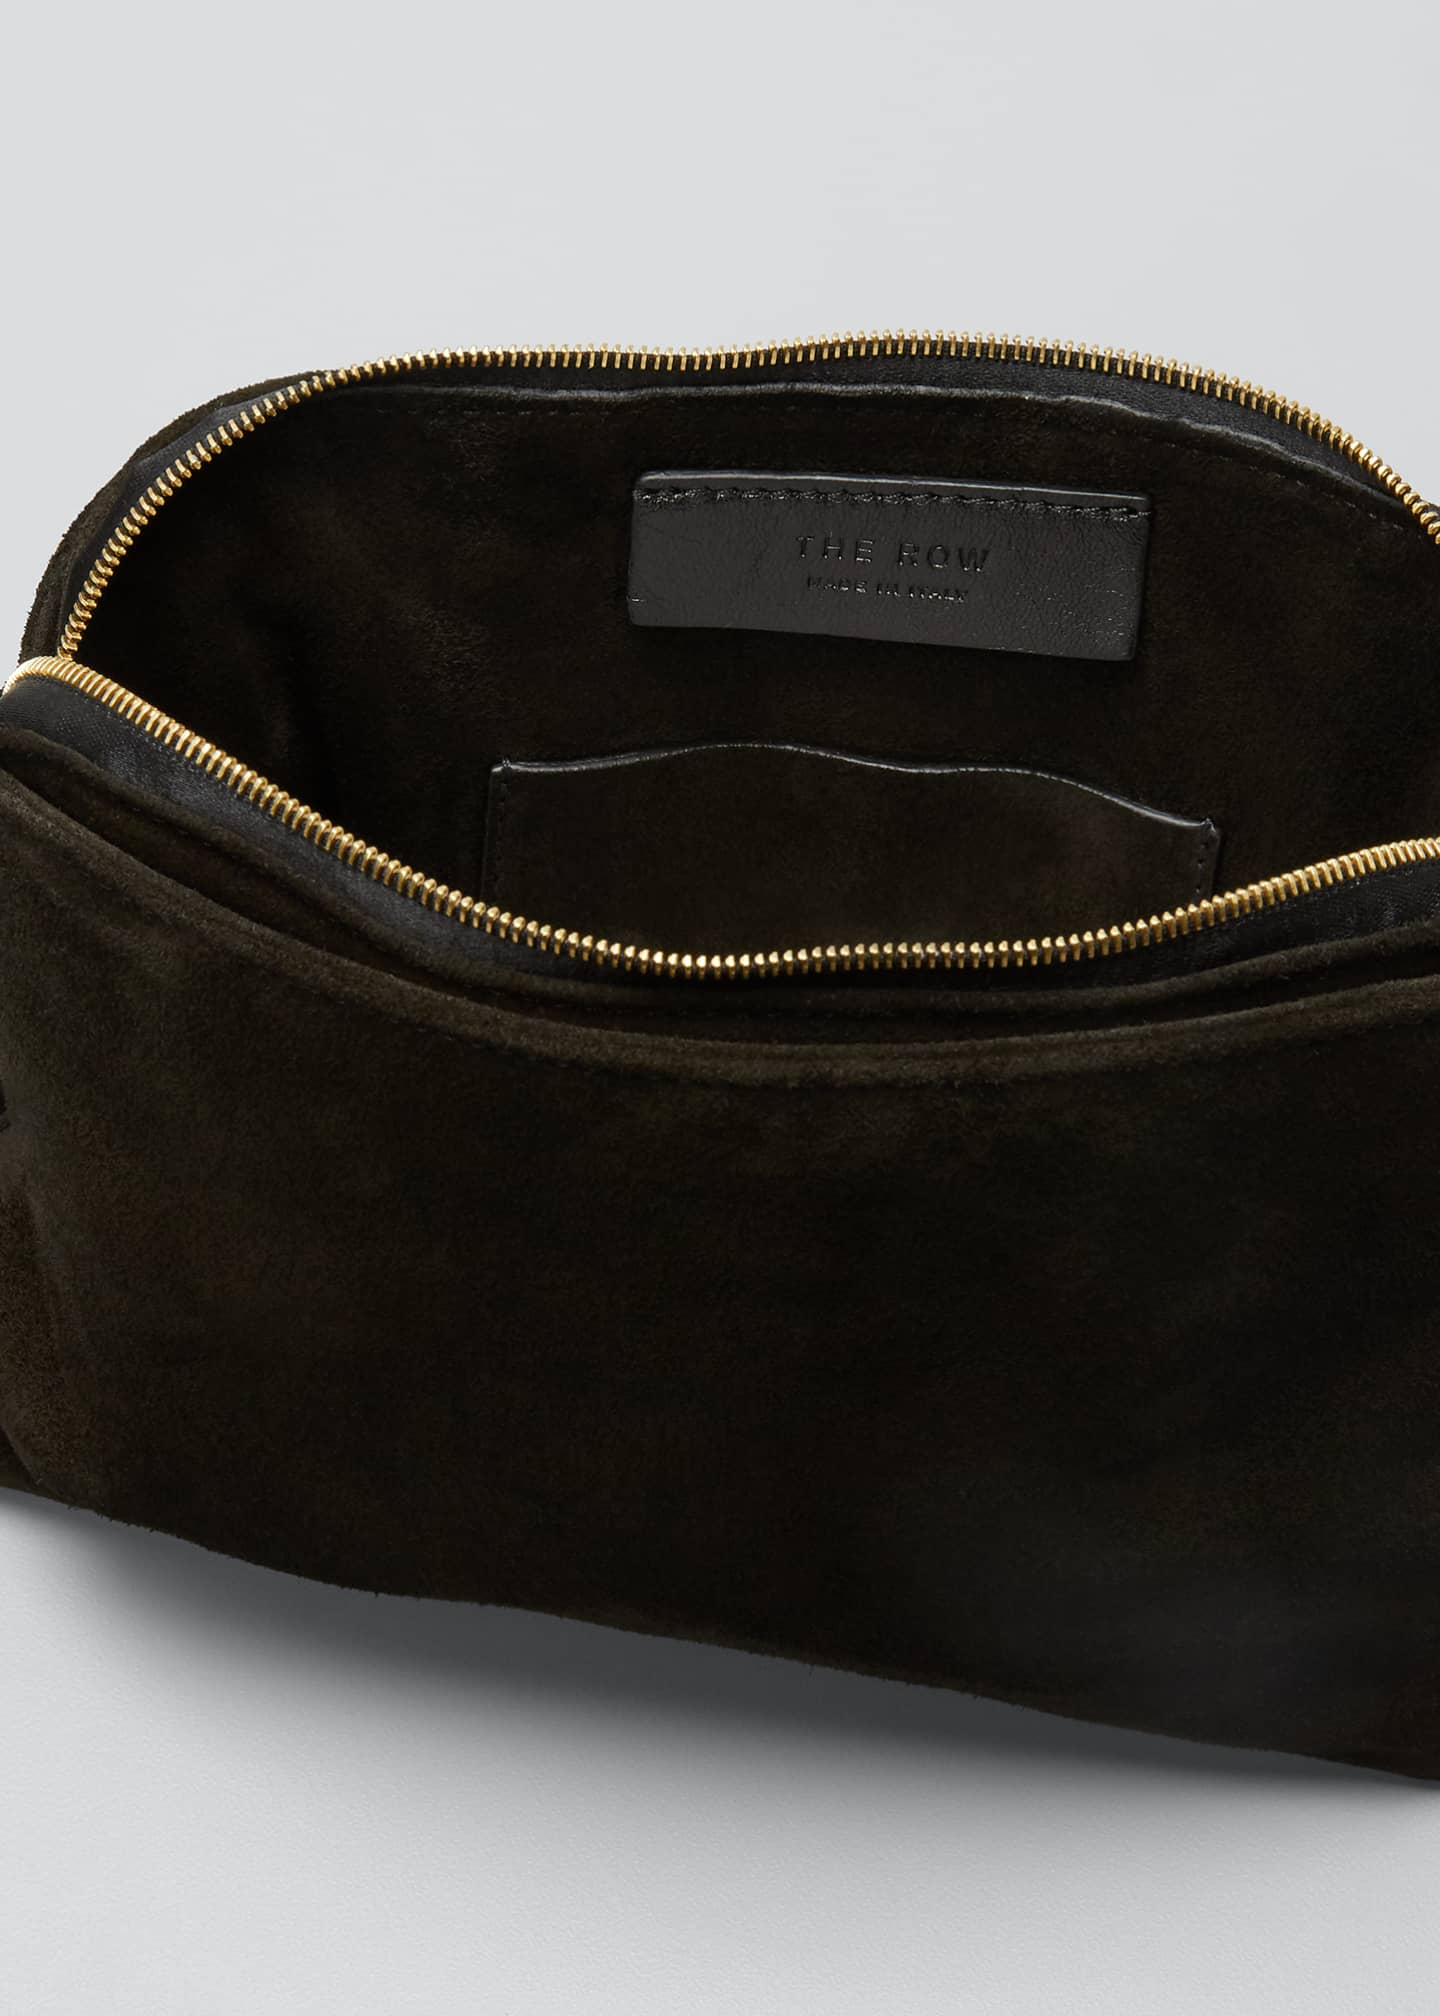 Image 4 of 5: SUEDE WRISTLET CLUTCH W/ TAS